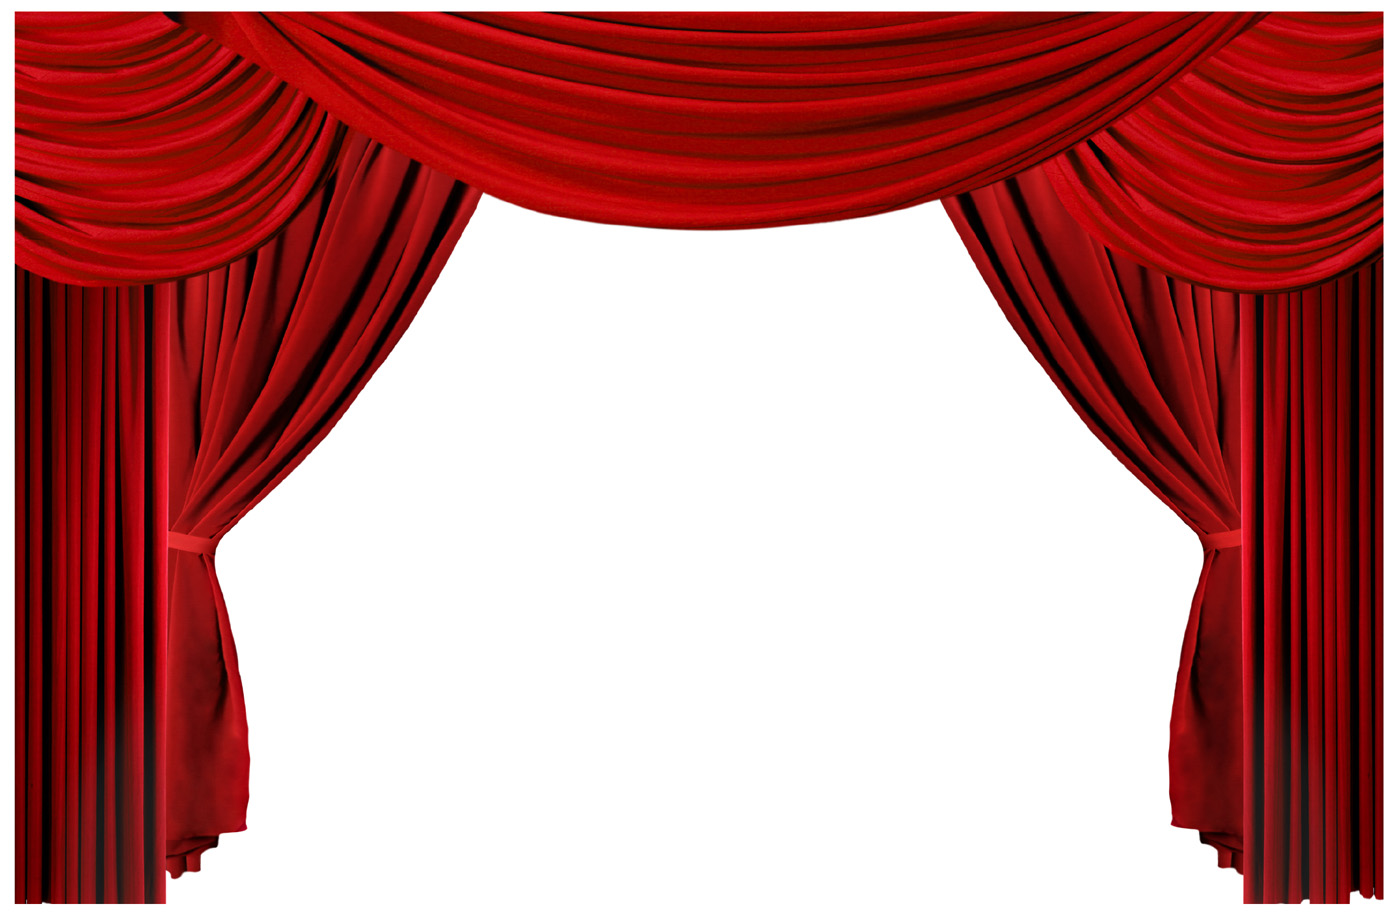 cartoon red curtains wallpaper - photo #18